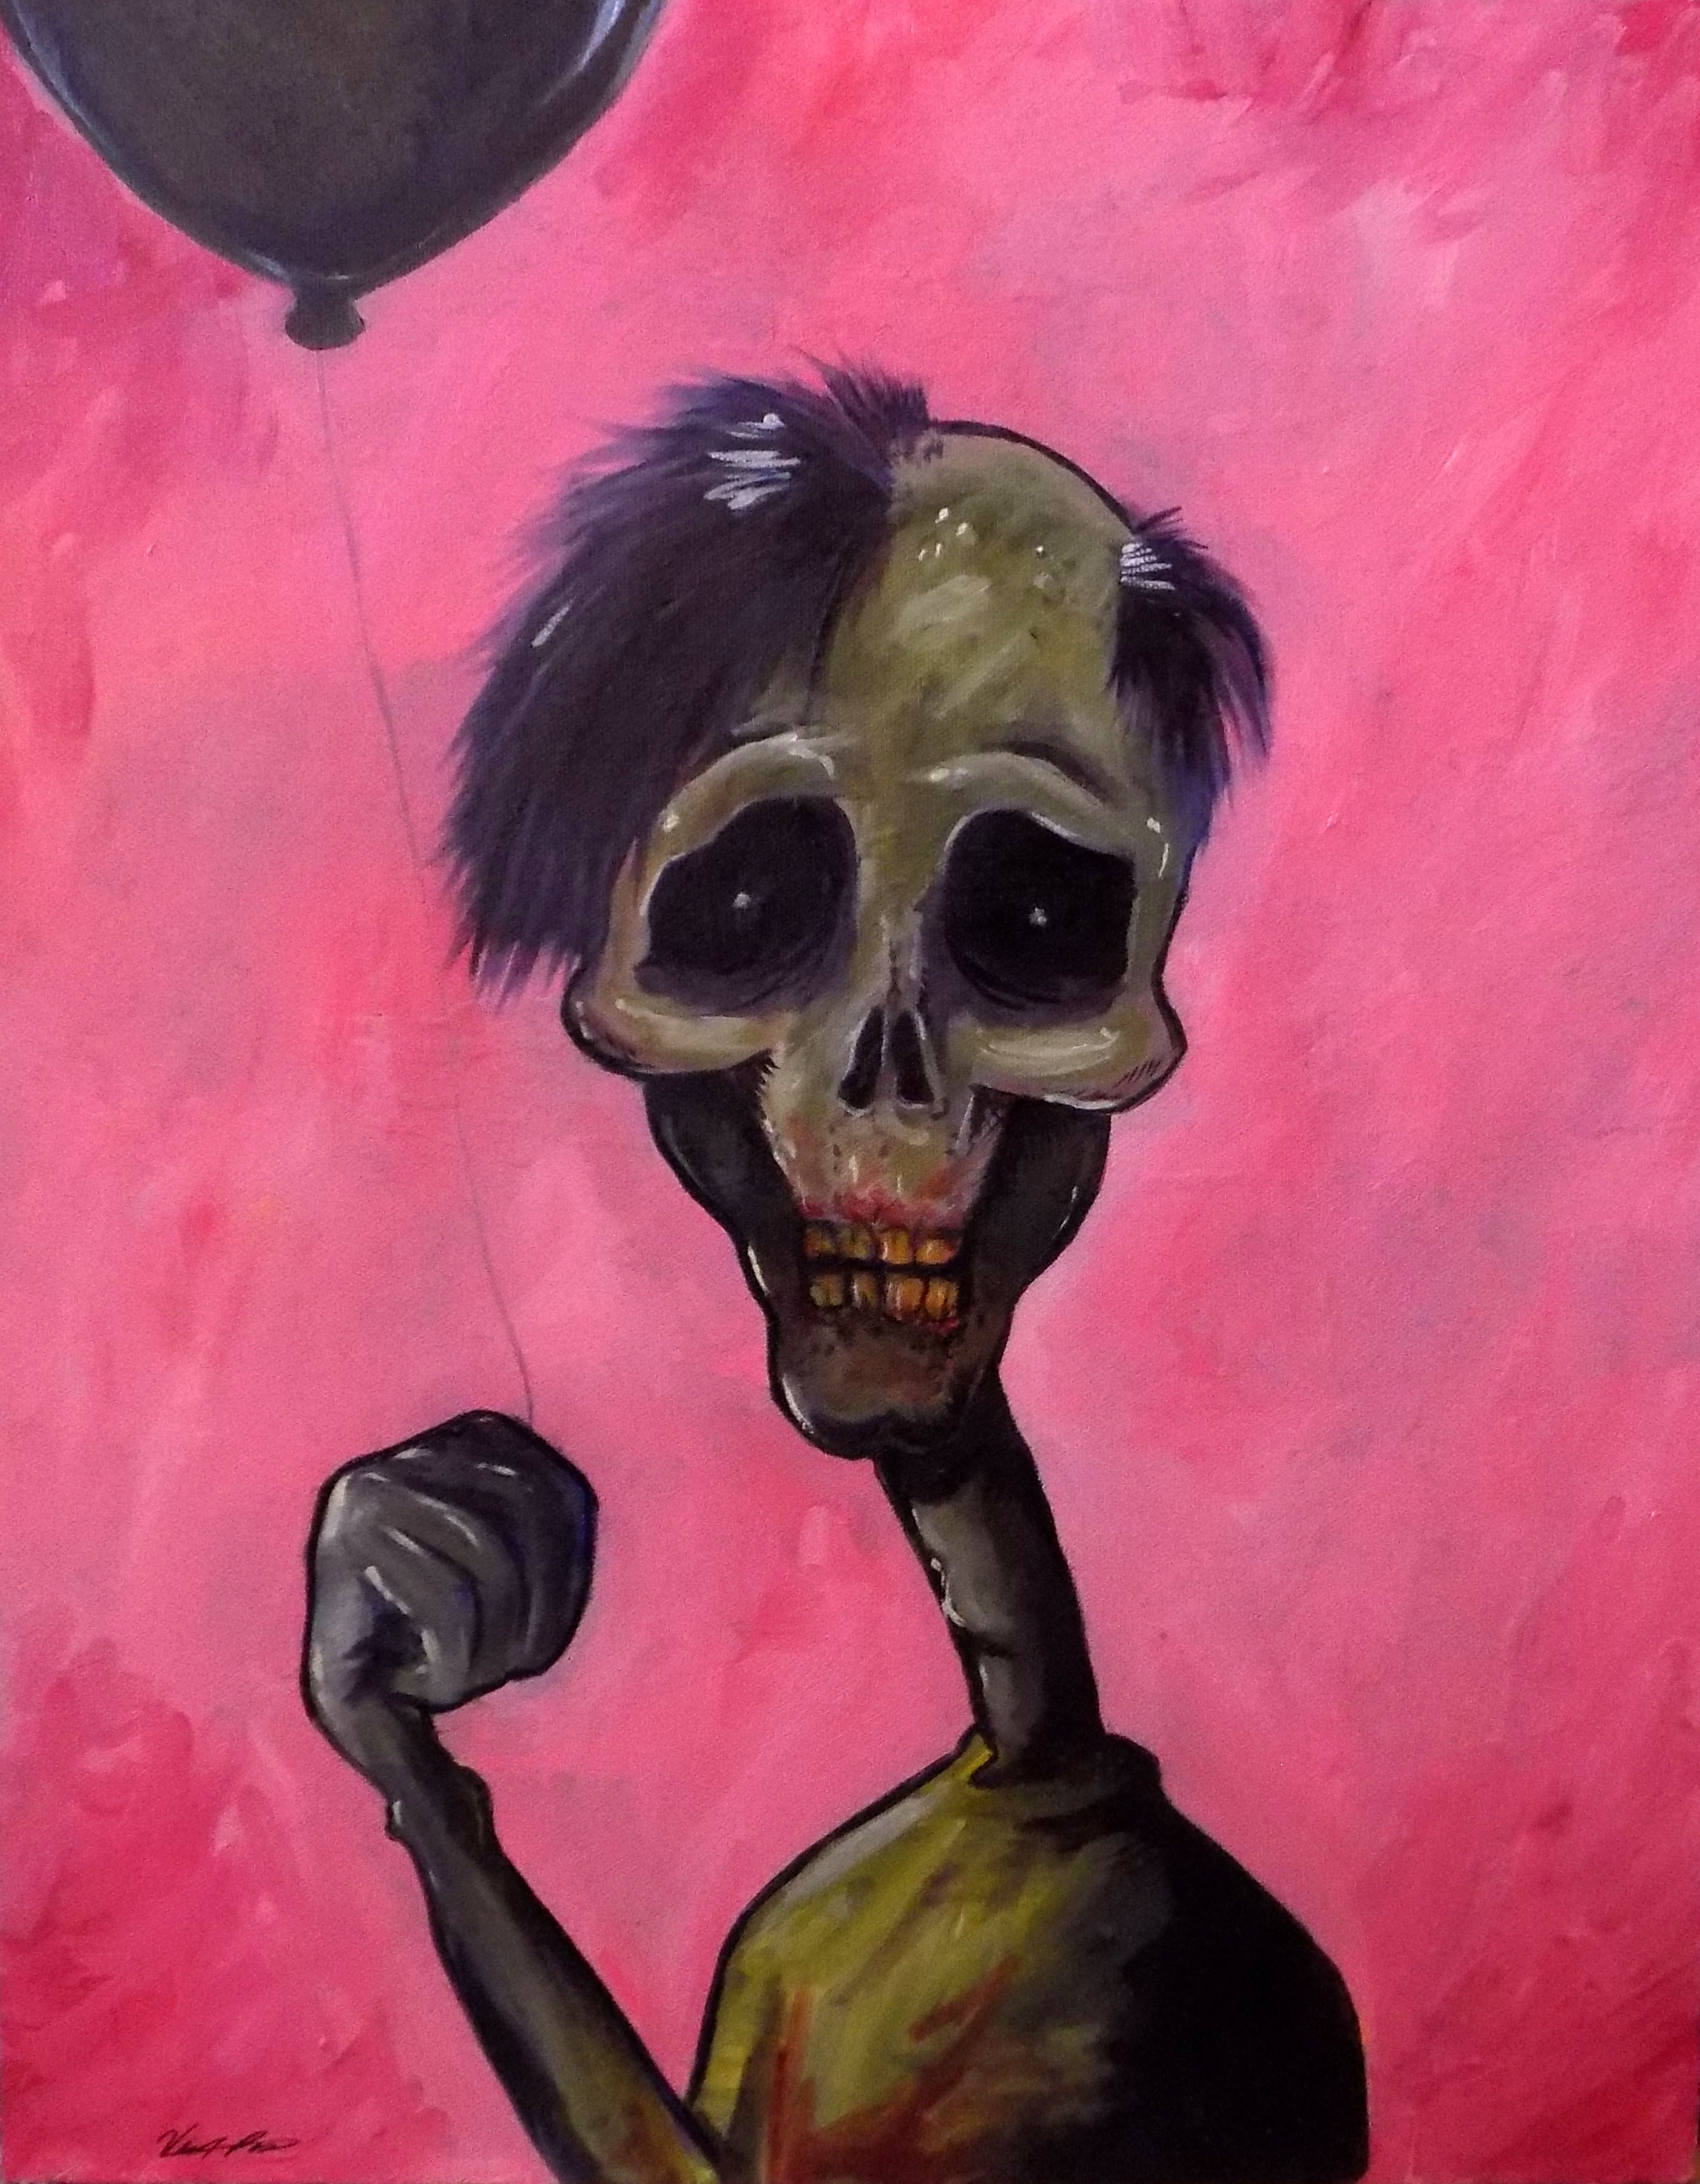 Creep with the Ballon-oil on canvas-20in by 18 in-2016- $250